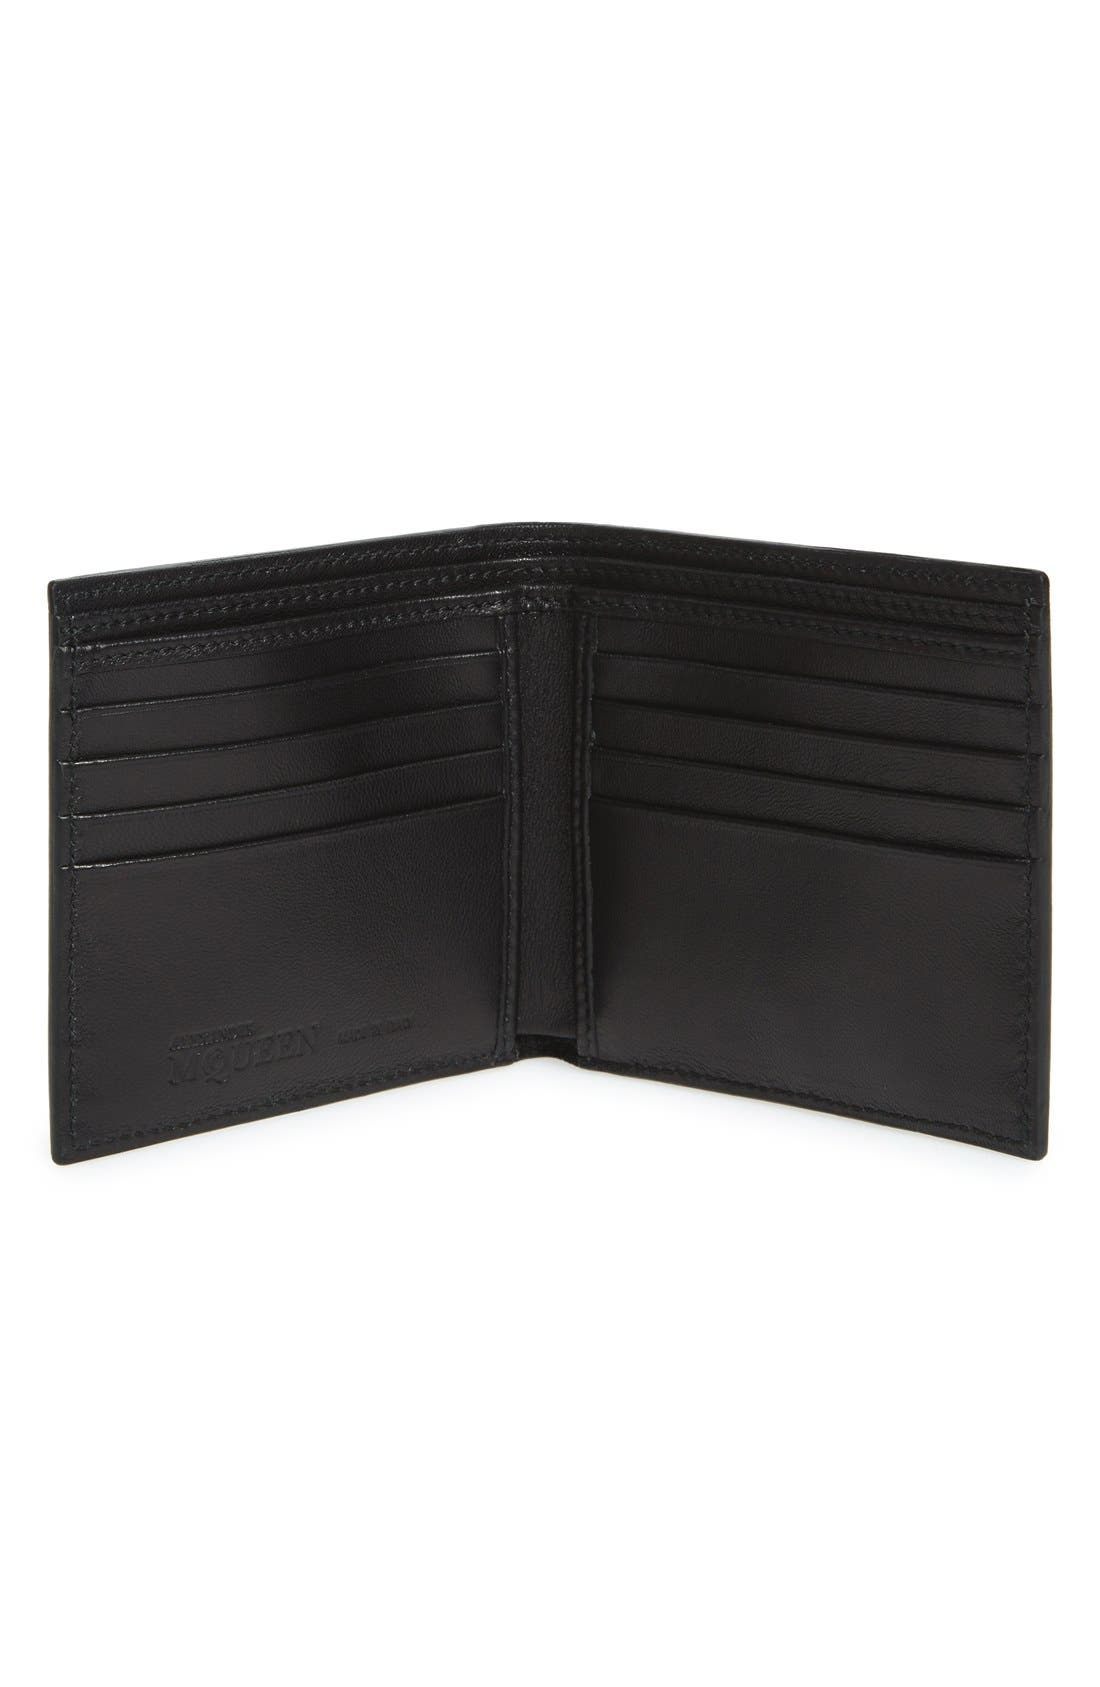 Rib Cage Leather Wallet,                             Alternate thumbnail 2, color,                             BLACK